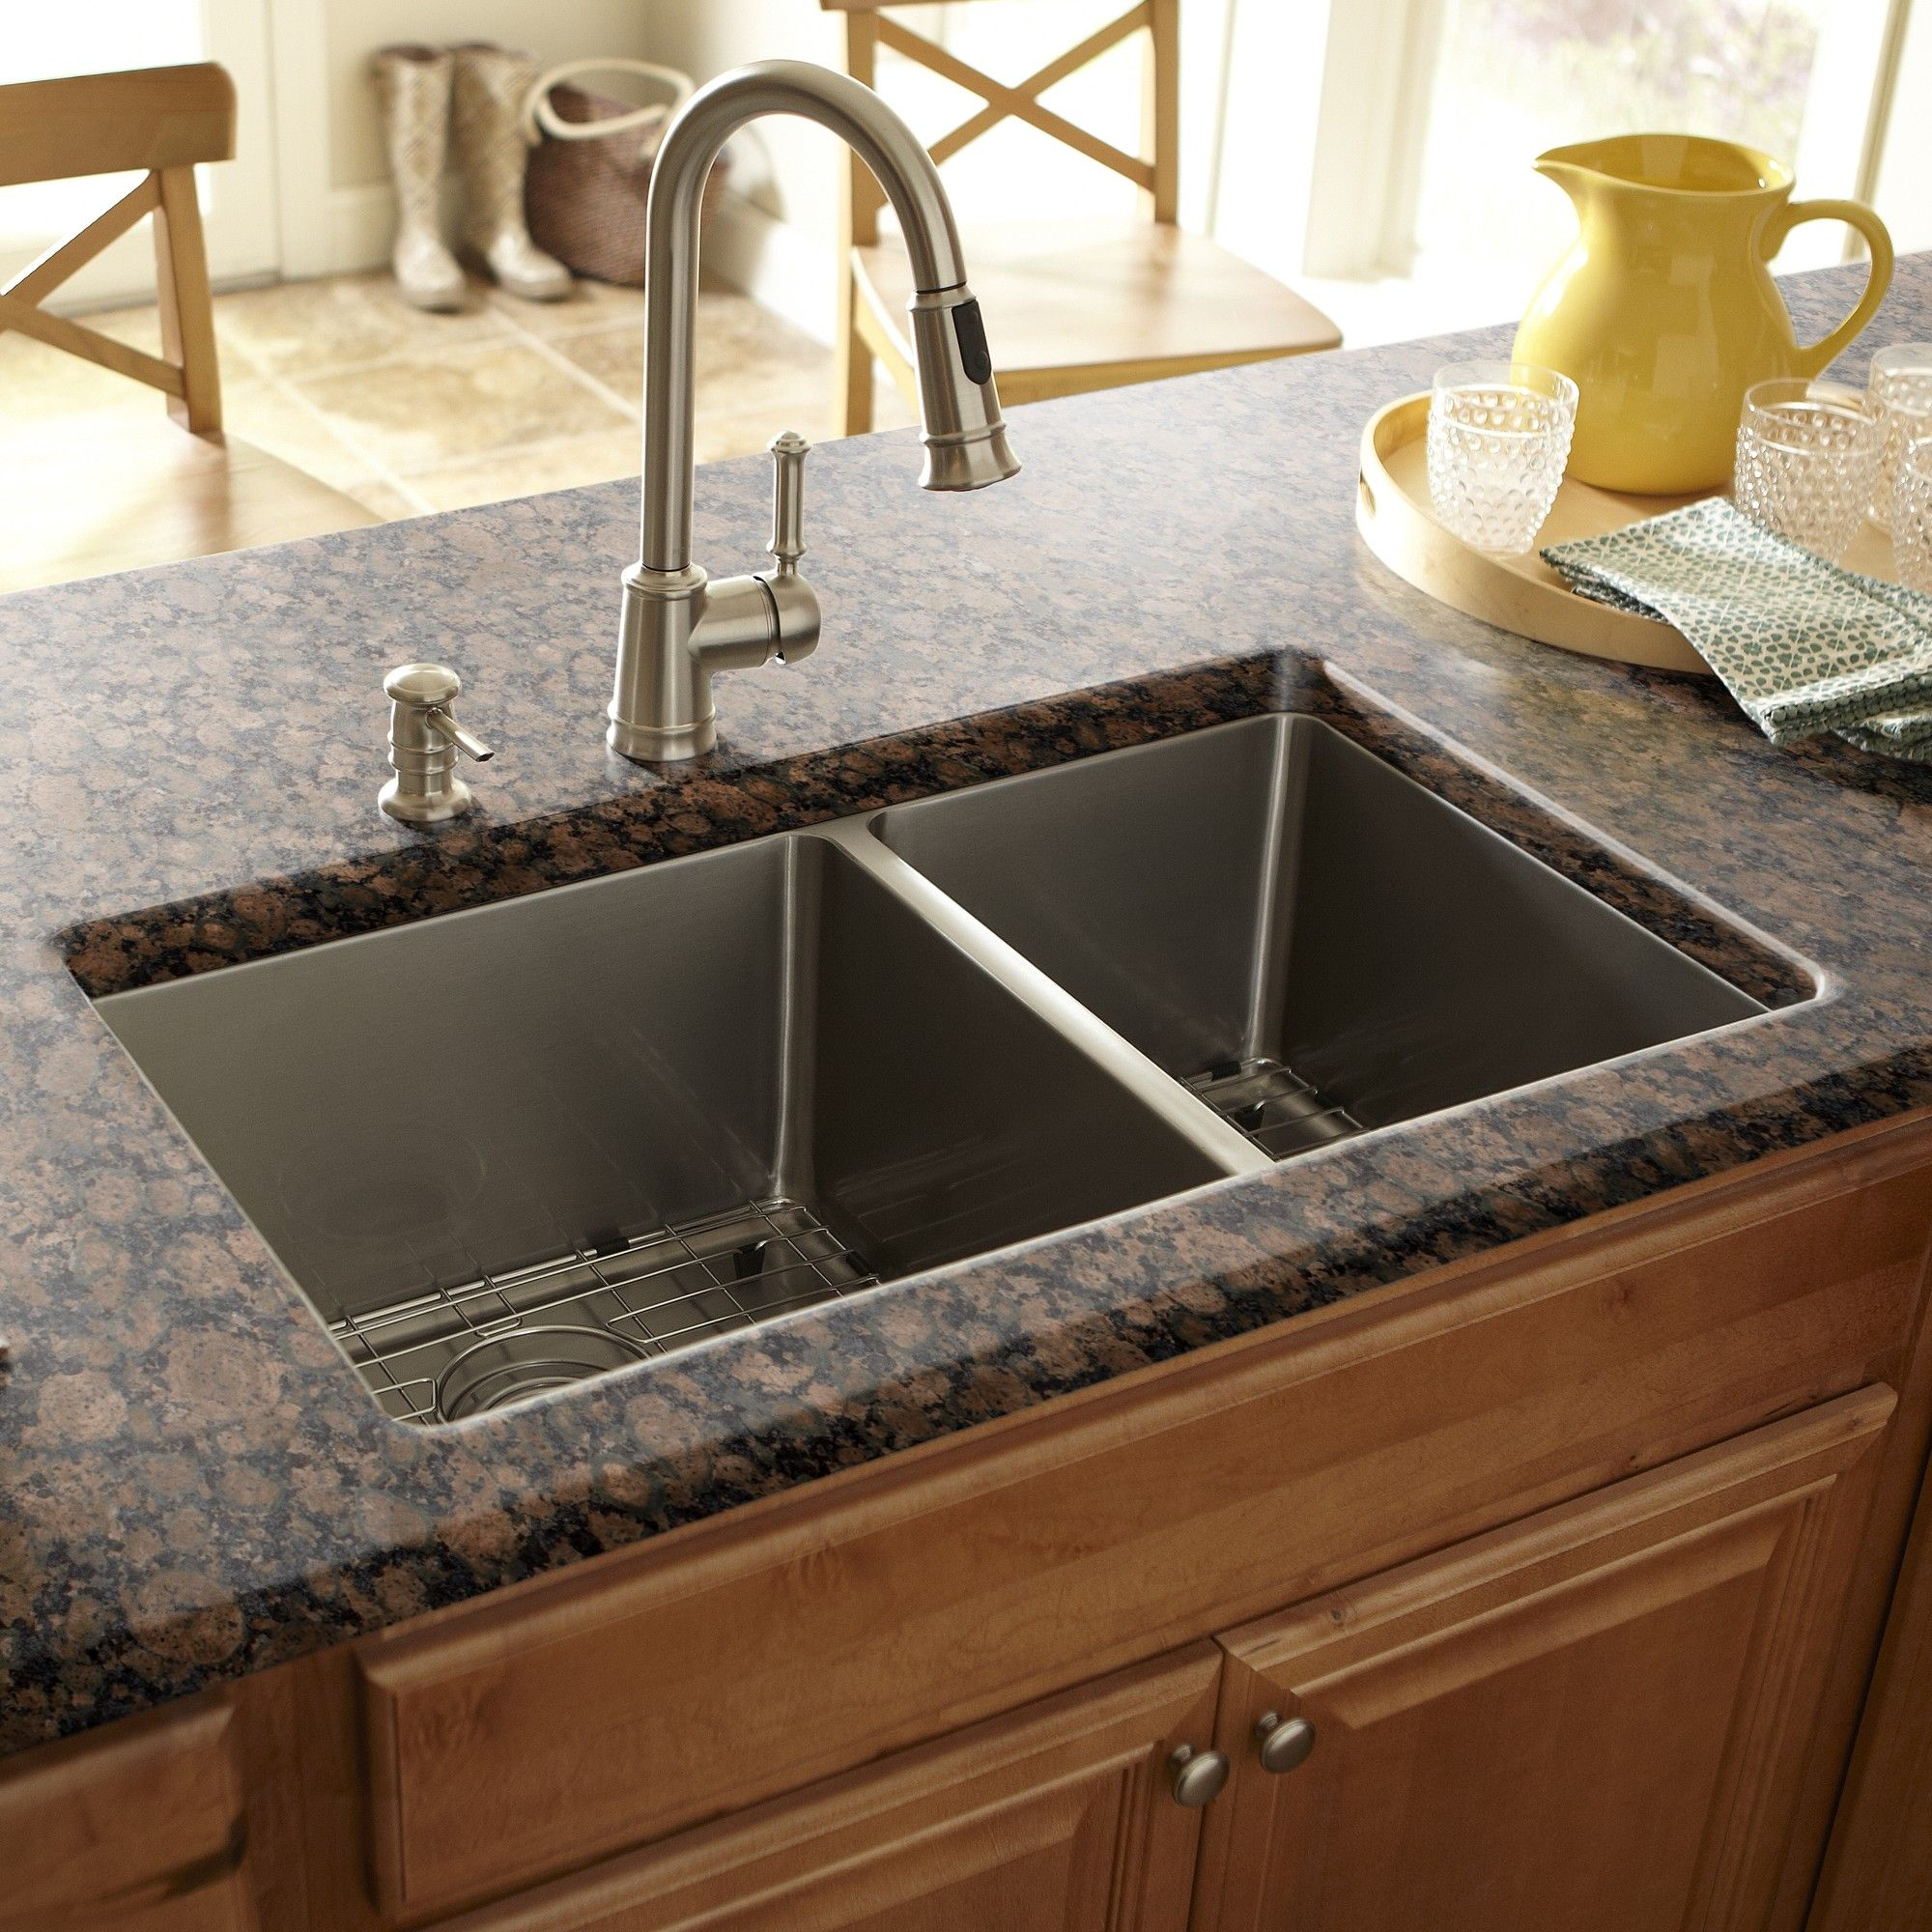 double bowl kitchen sink small with dining table schon 17 quot x 30 design